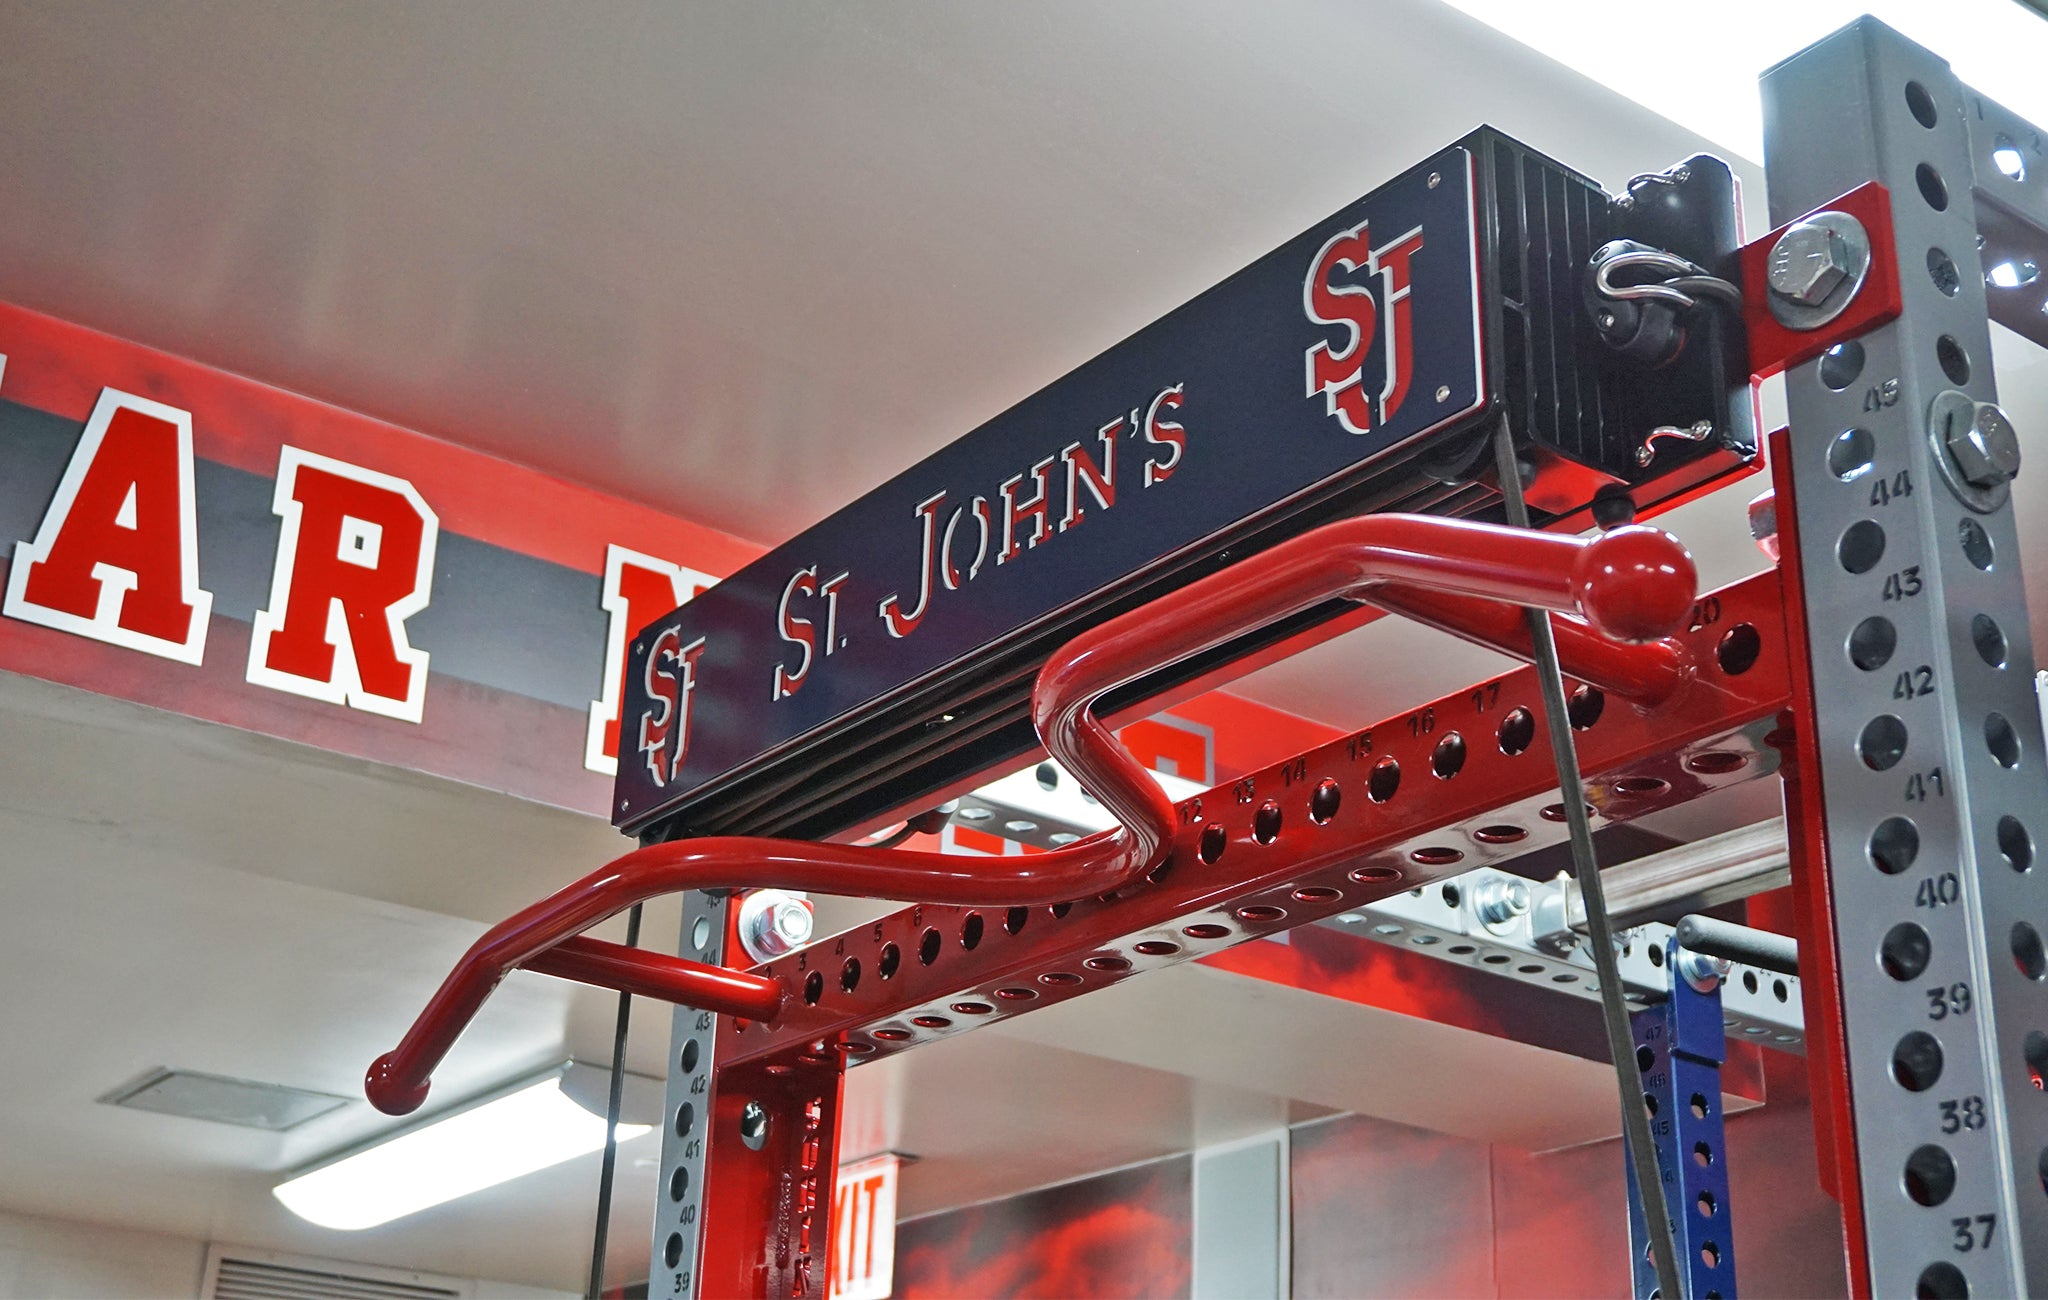 St. John's University strength training